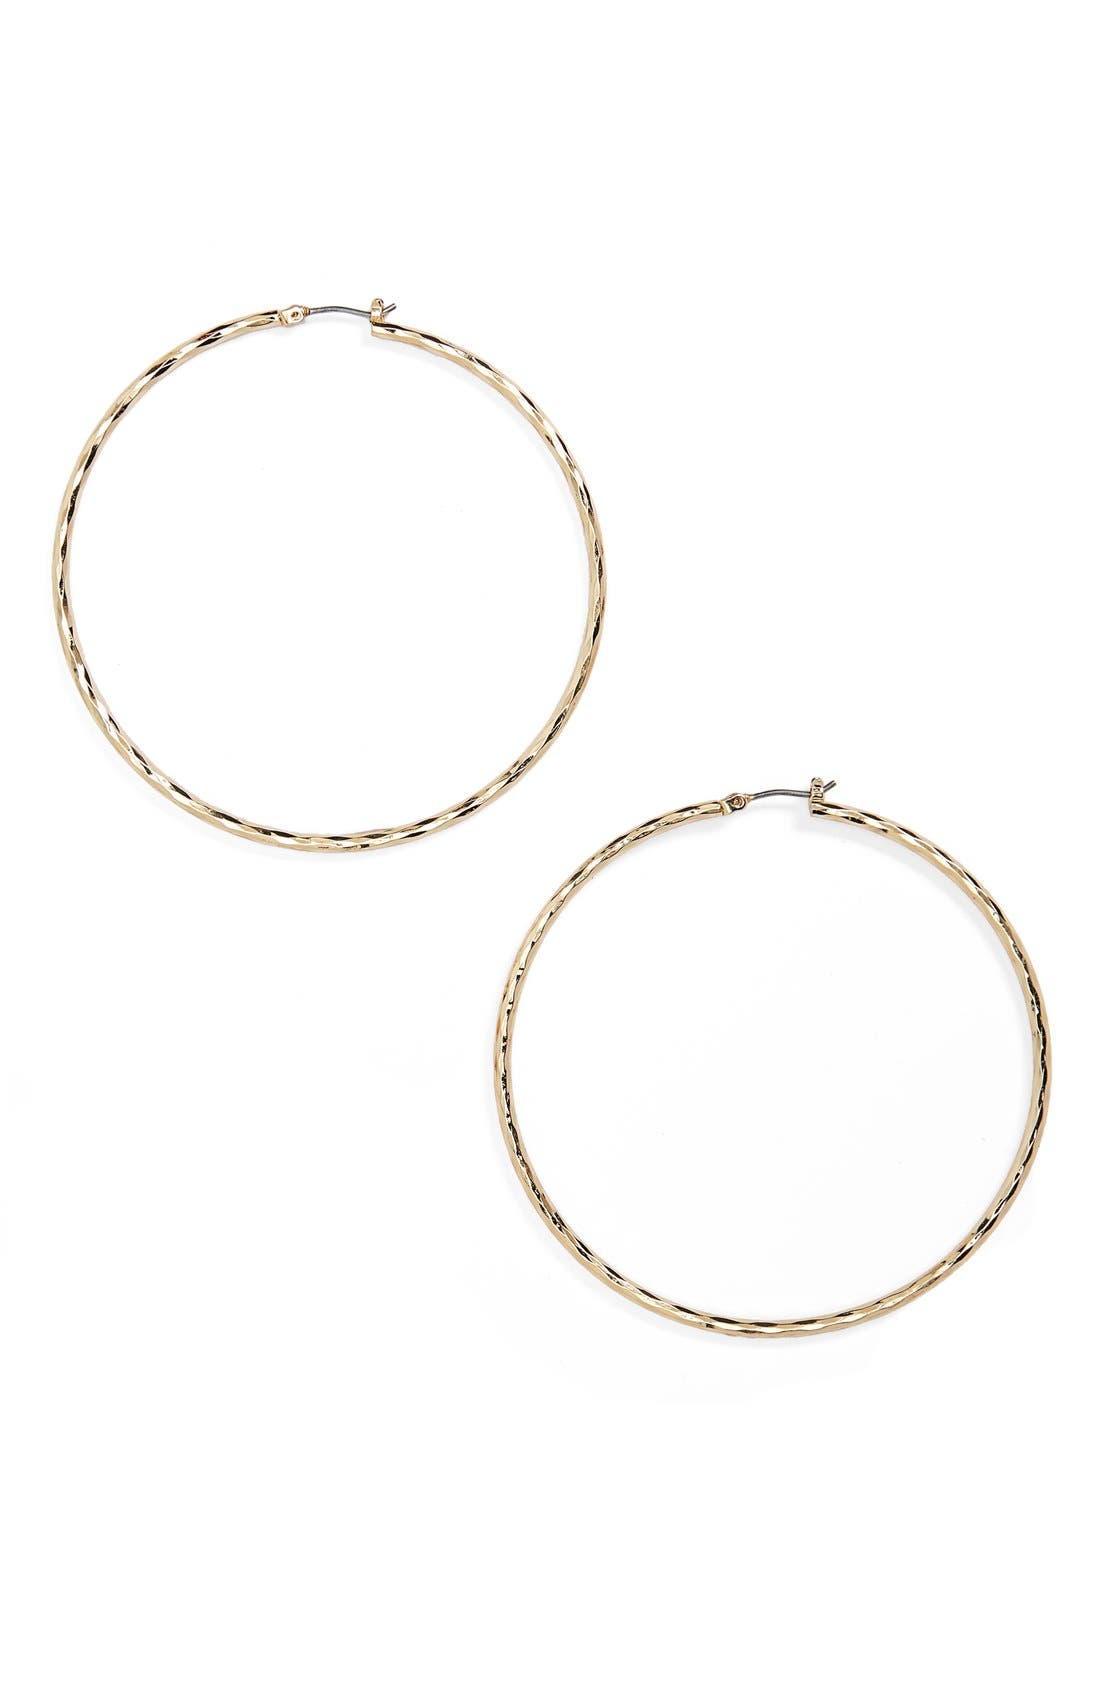 Alternate Image 1 Selected - Nordstrom Hammered Hoop Earrings